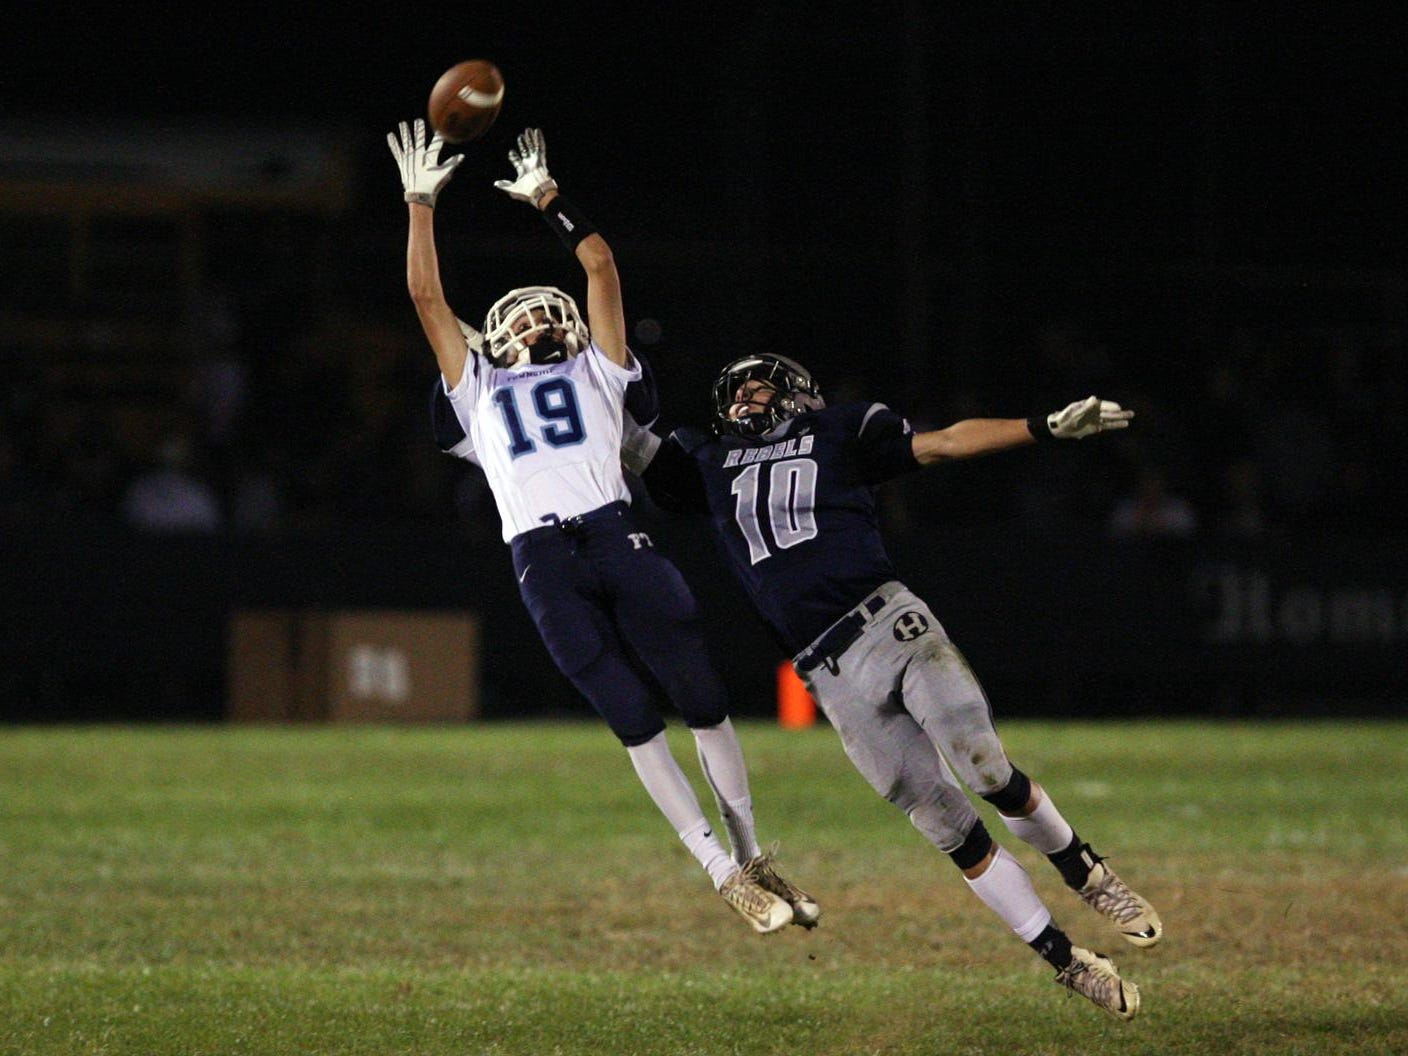 Pat Laricy, #15 Freehold Township, almost makes the interception as intended receiver Nic Rossi, #10 Howell, tries to defend against him in a football game Friday, September 25, 2015, at Howell High School.